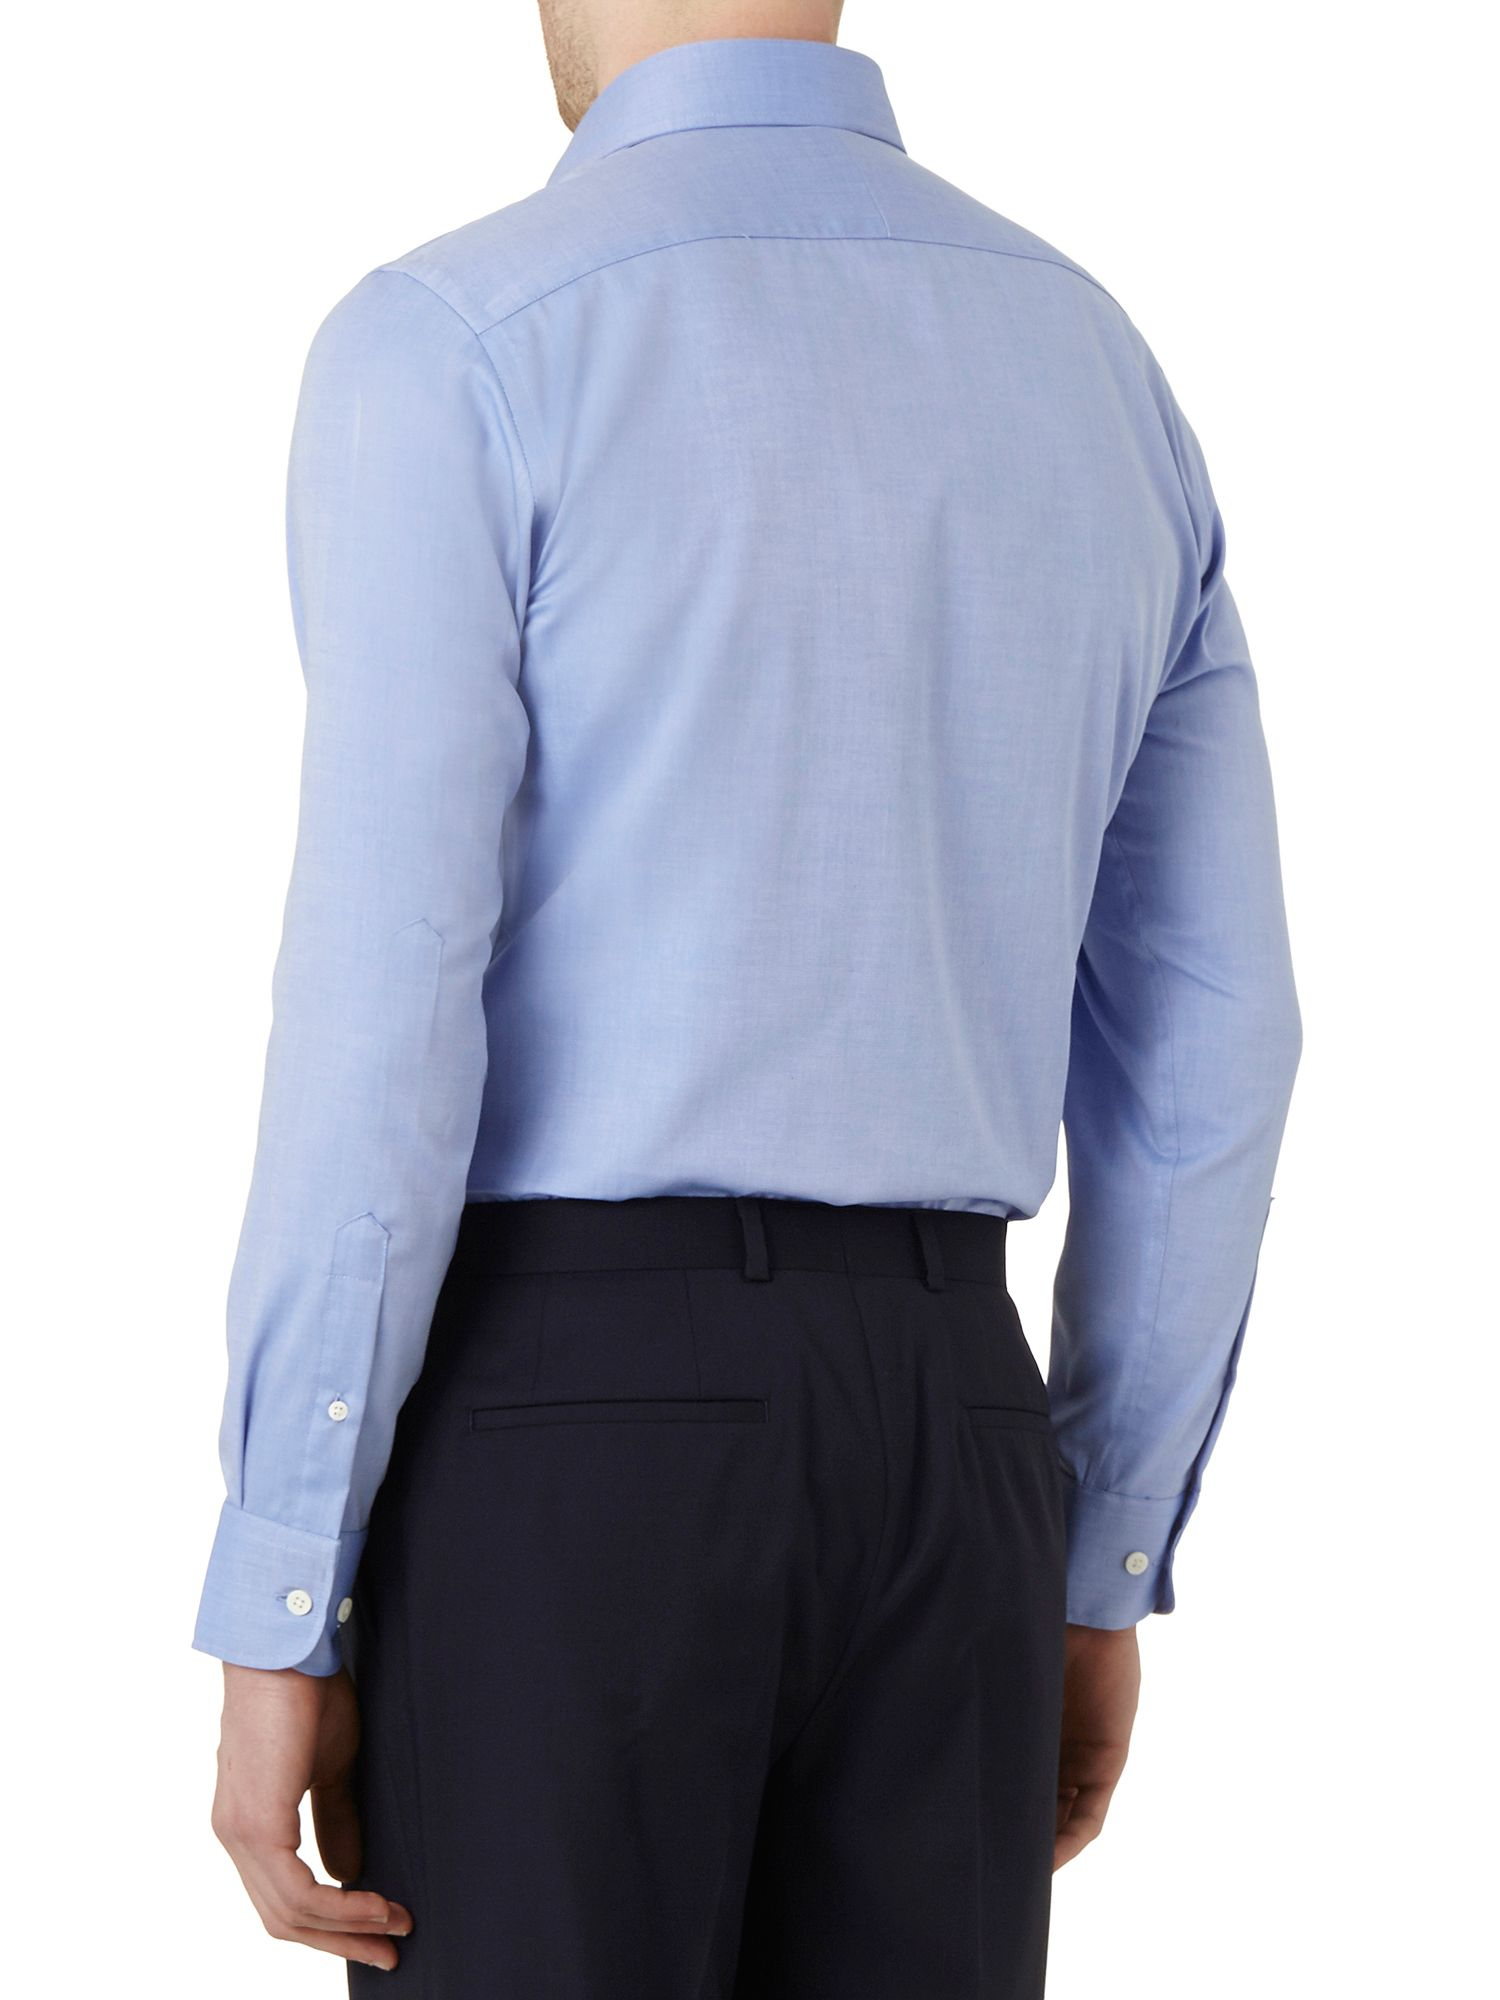 Lyst austin reed non iron slim fit twill shirt in blue for Slim fit non iron shirts